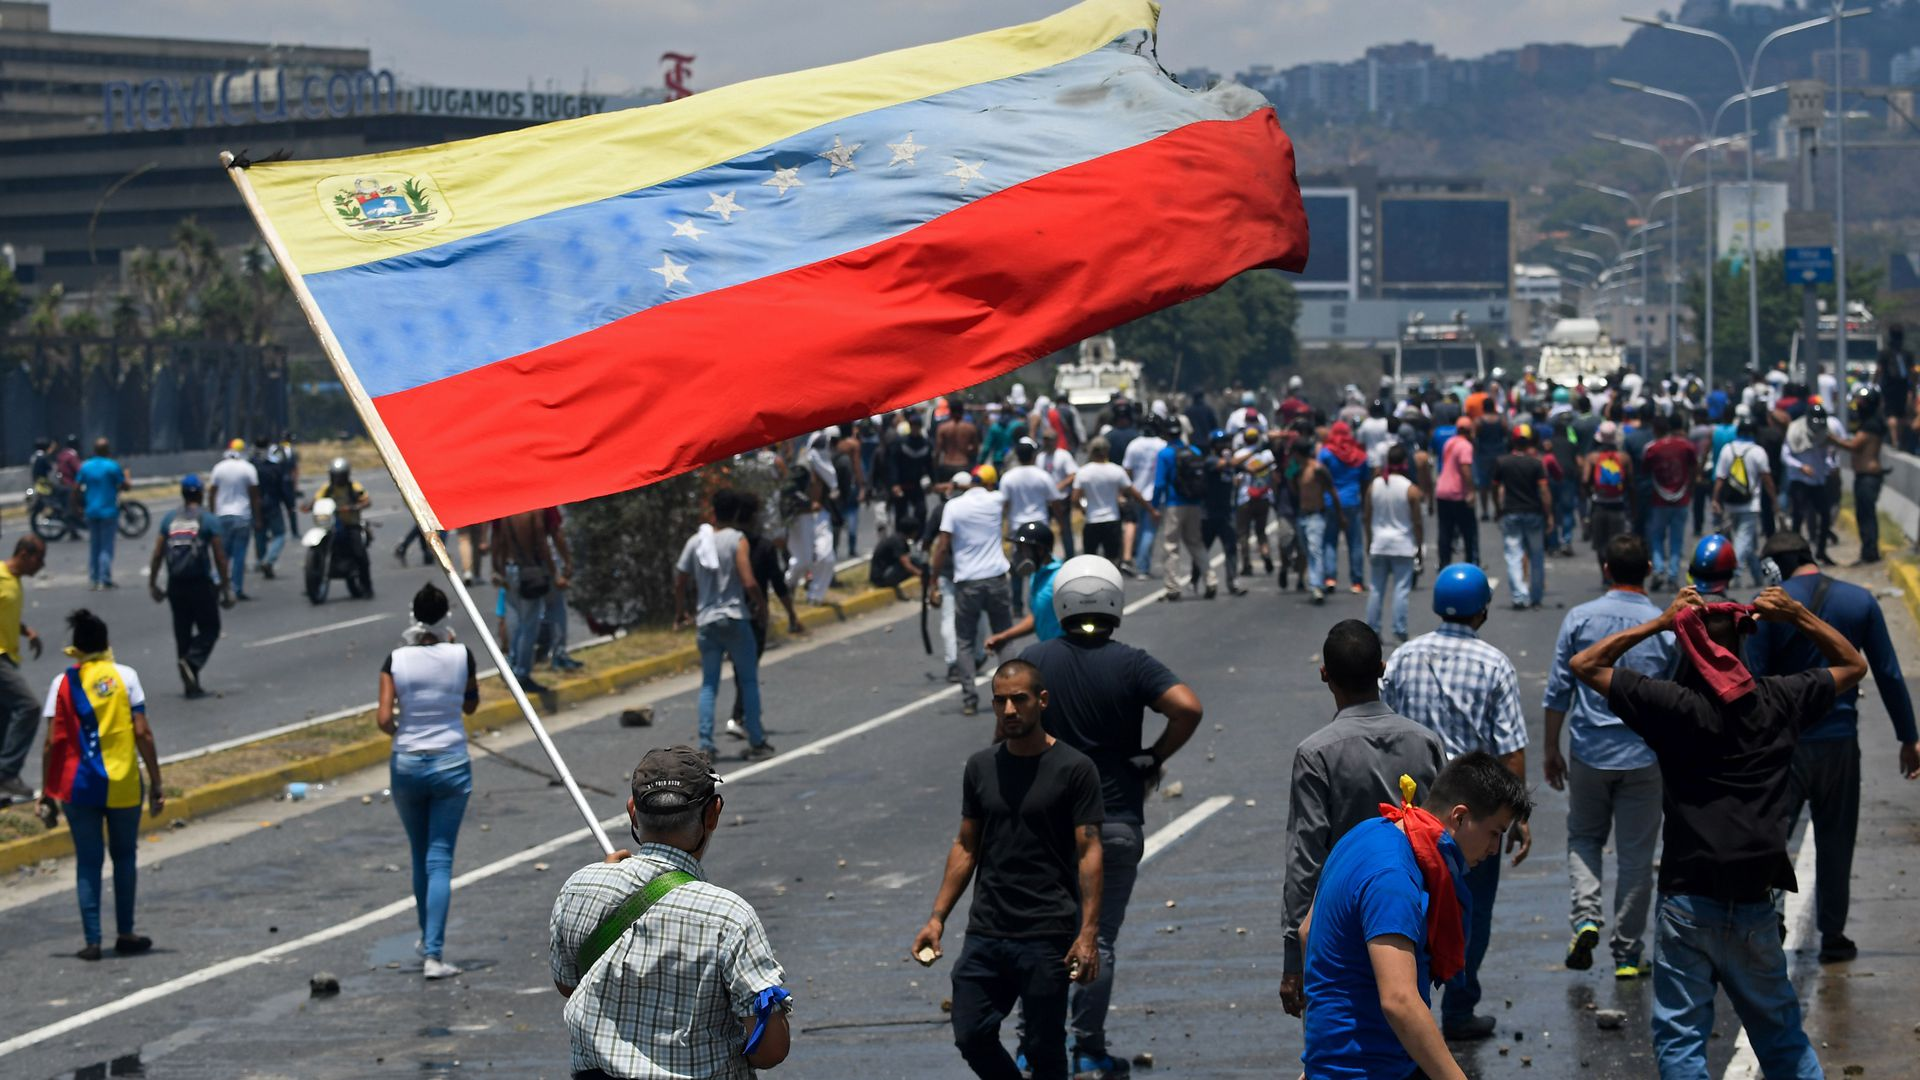 An opposition demonstrator waves a Venezuelan national flag during clashes with soldiers loyal to Venezuelan President Nicolas Maduro.